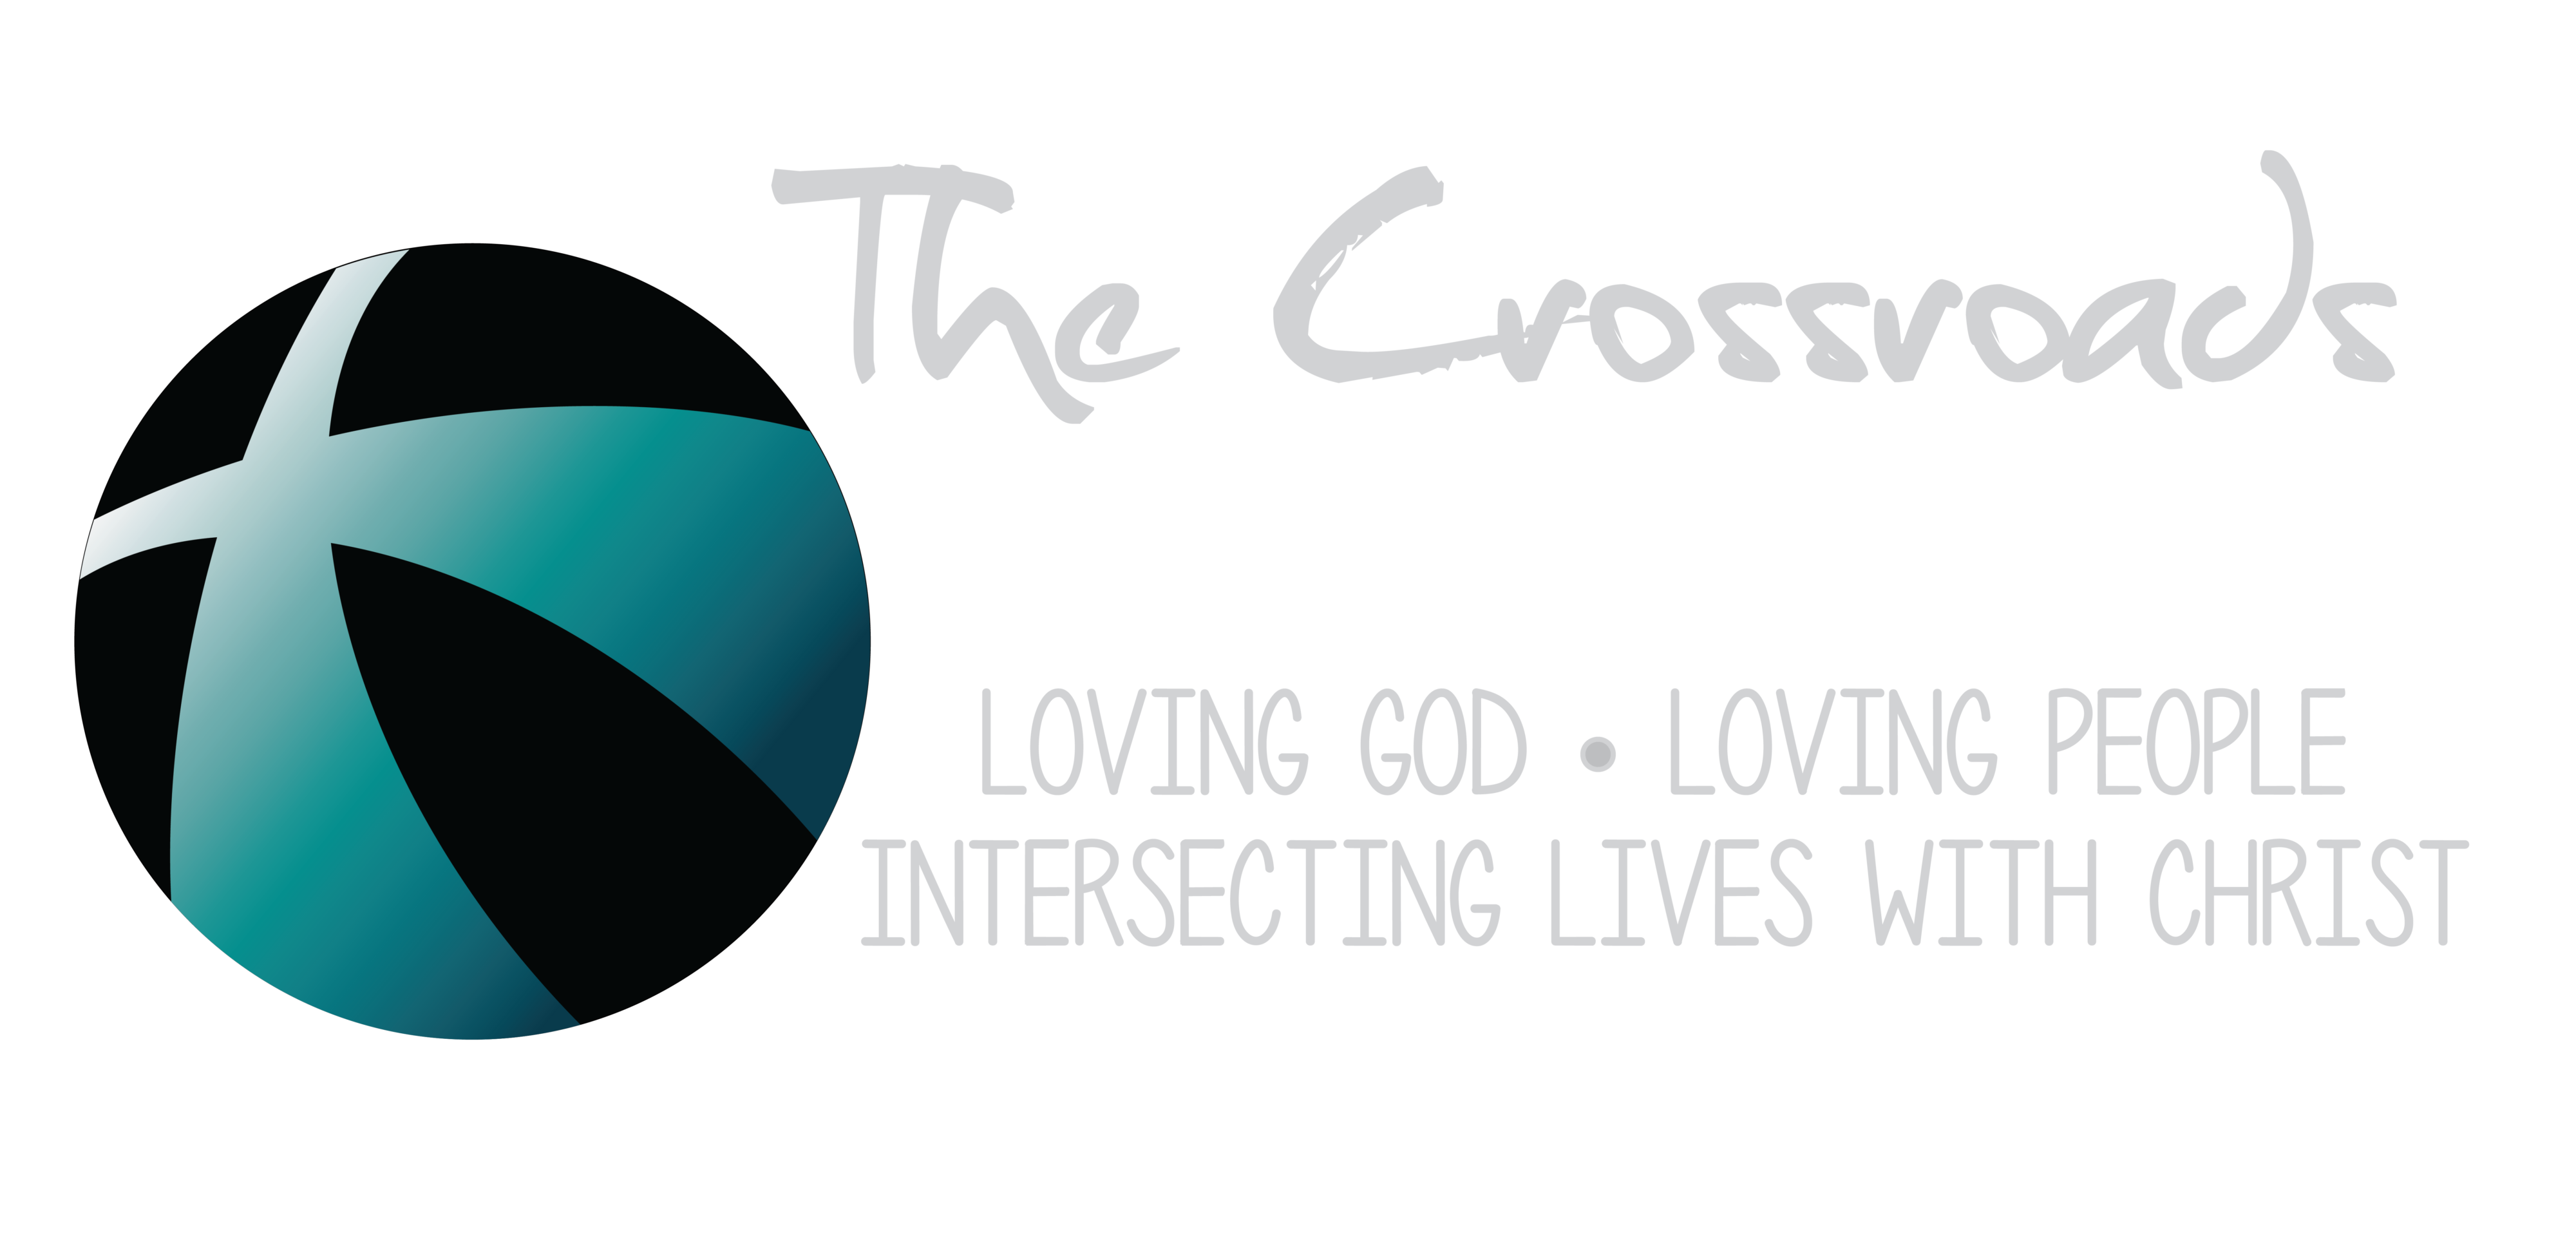 THE CROSSROADS CHURCH Love God, Love People and Intersect Lives with Christ